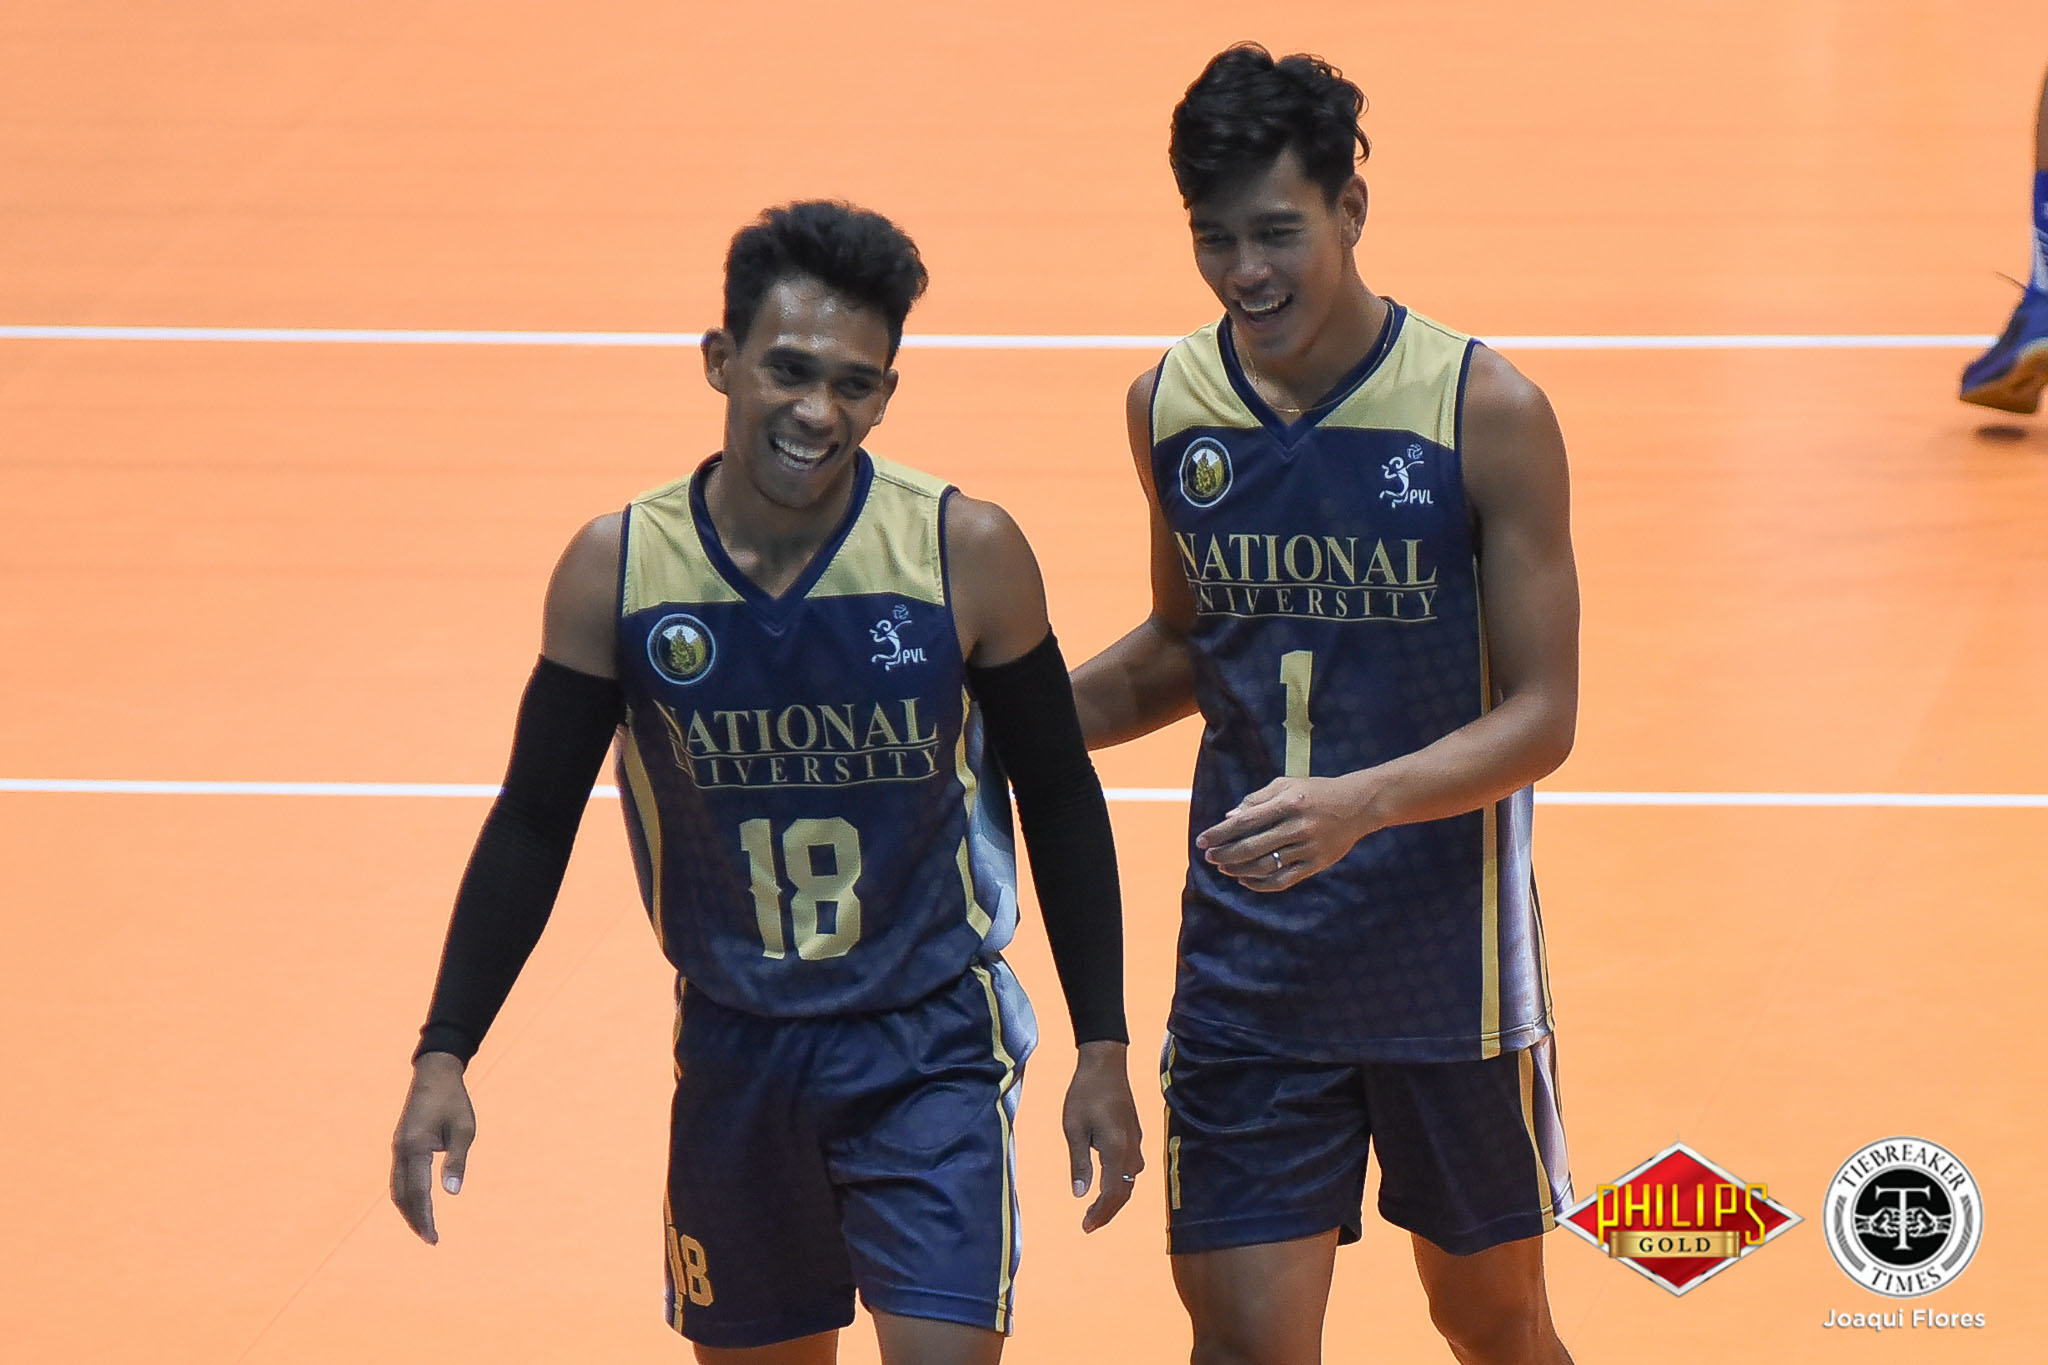 Tiebreaker Times Bulldogs outmuscle Tiger Spikers, inch closer to crown News NU PVL UST Volleyball  UST Men's Volleyball Ricky Marcos Odjie Mamon NU Men's Volleyball Mark Calado MAnuel Medina Madz Gampong Kim Dayandante FEU Men's Volleyball Dante Alinsunurin Bryan Bagunas Adamson Men's Volleyball 2018 PVL Men's Collegiate Conference